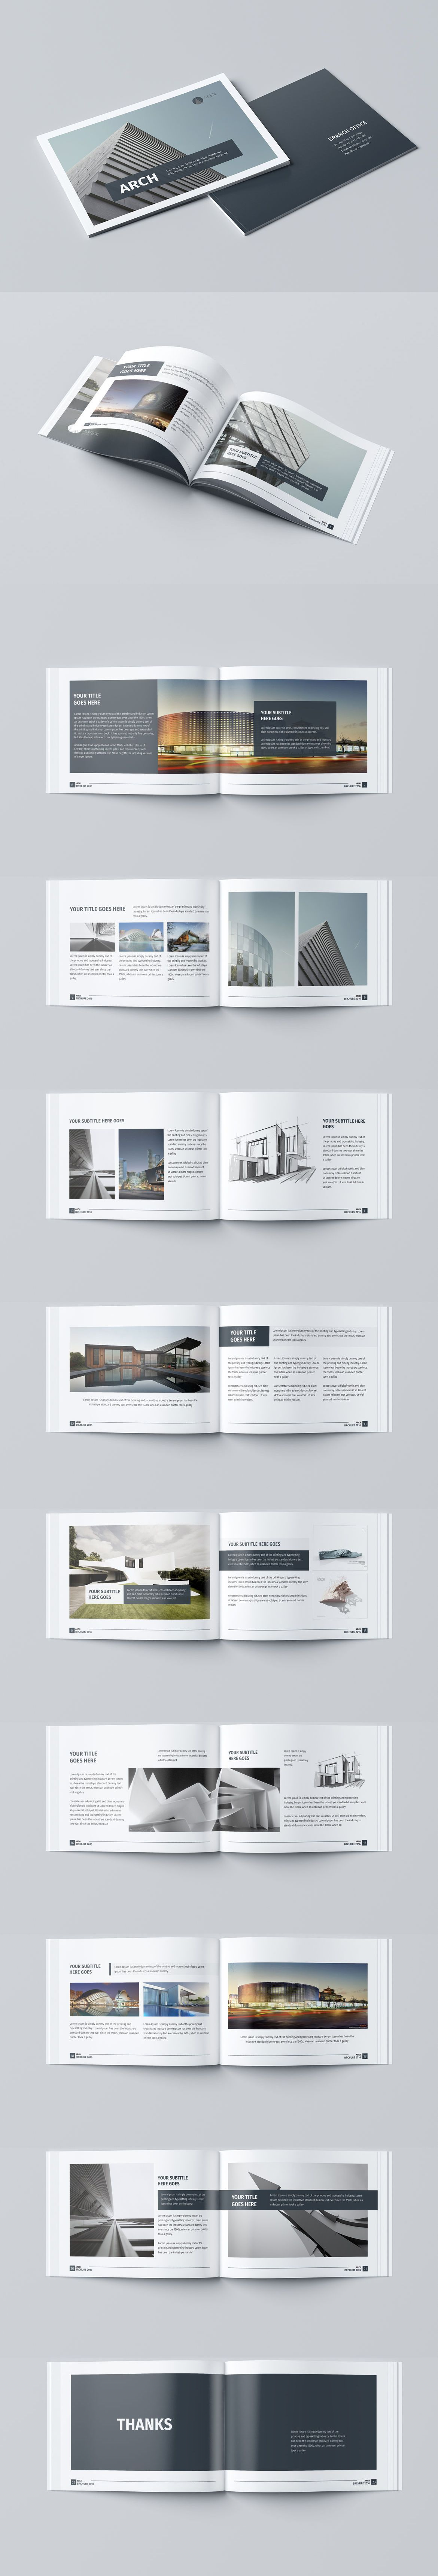 Modern Architecture Brochure 24 Pages A4 & A5 Template InDesign INDD ...